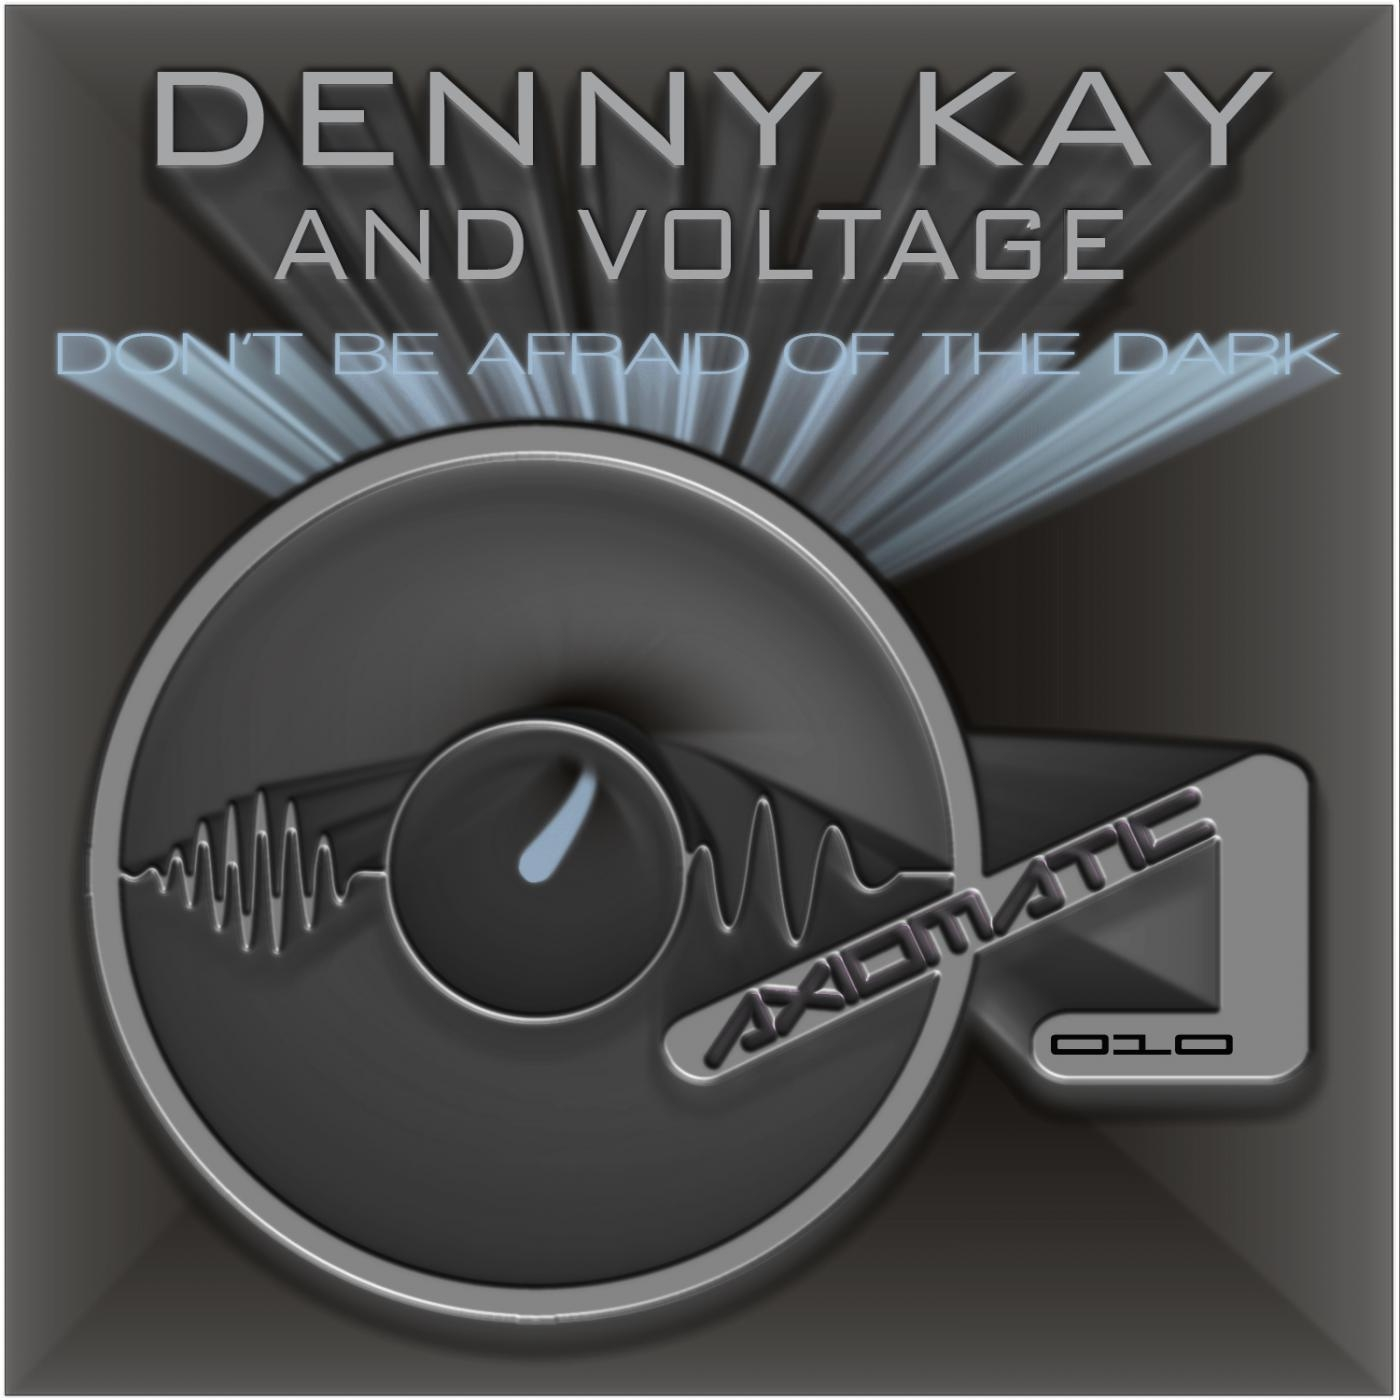 Denny Kay and Voltage - Don\'t Be Afraid Of The Dark (Denny Kay remix)